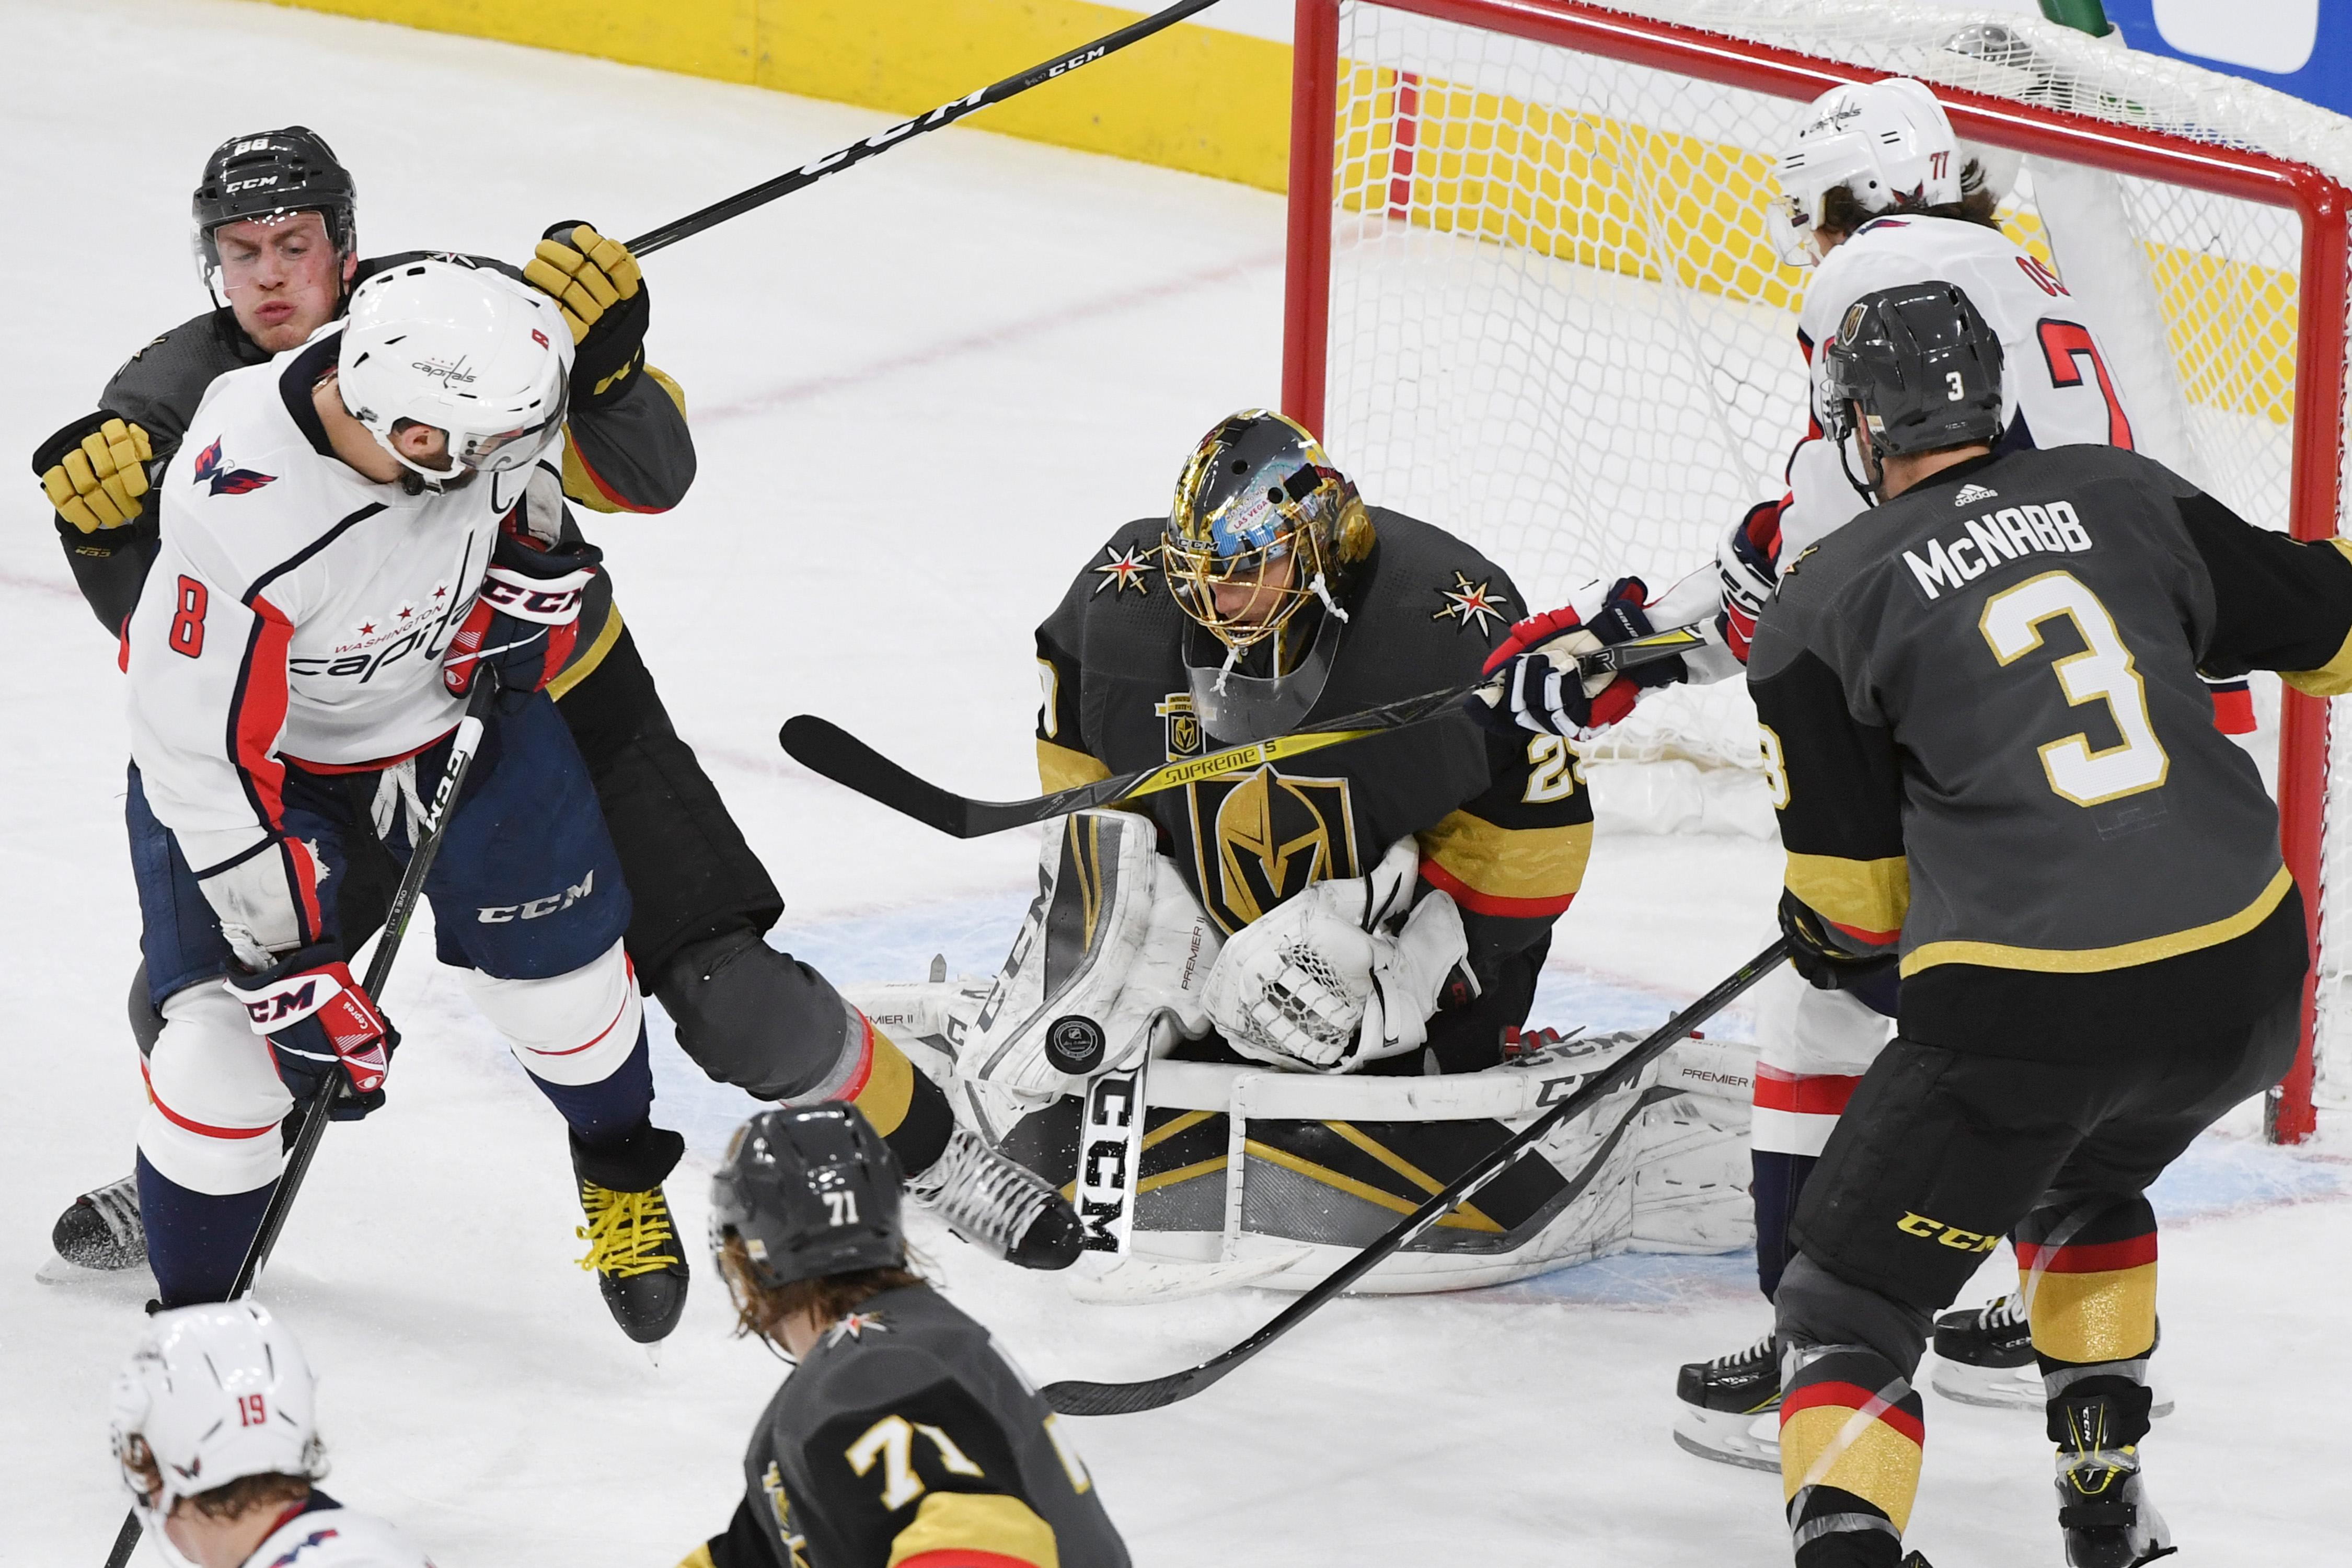 Vegas Golden Knights goalie Marc-Andre Fleury (29) makes a stop against the Washington Capitals during their NHL hockey game Saturday, December 23, 2017, at T-Mobile Arena in Las Vegas.  CREDIT: Sam Morris/Las Vegas News Bureau